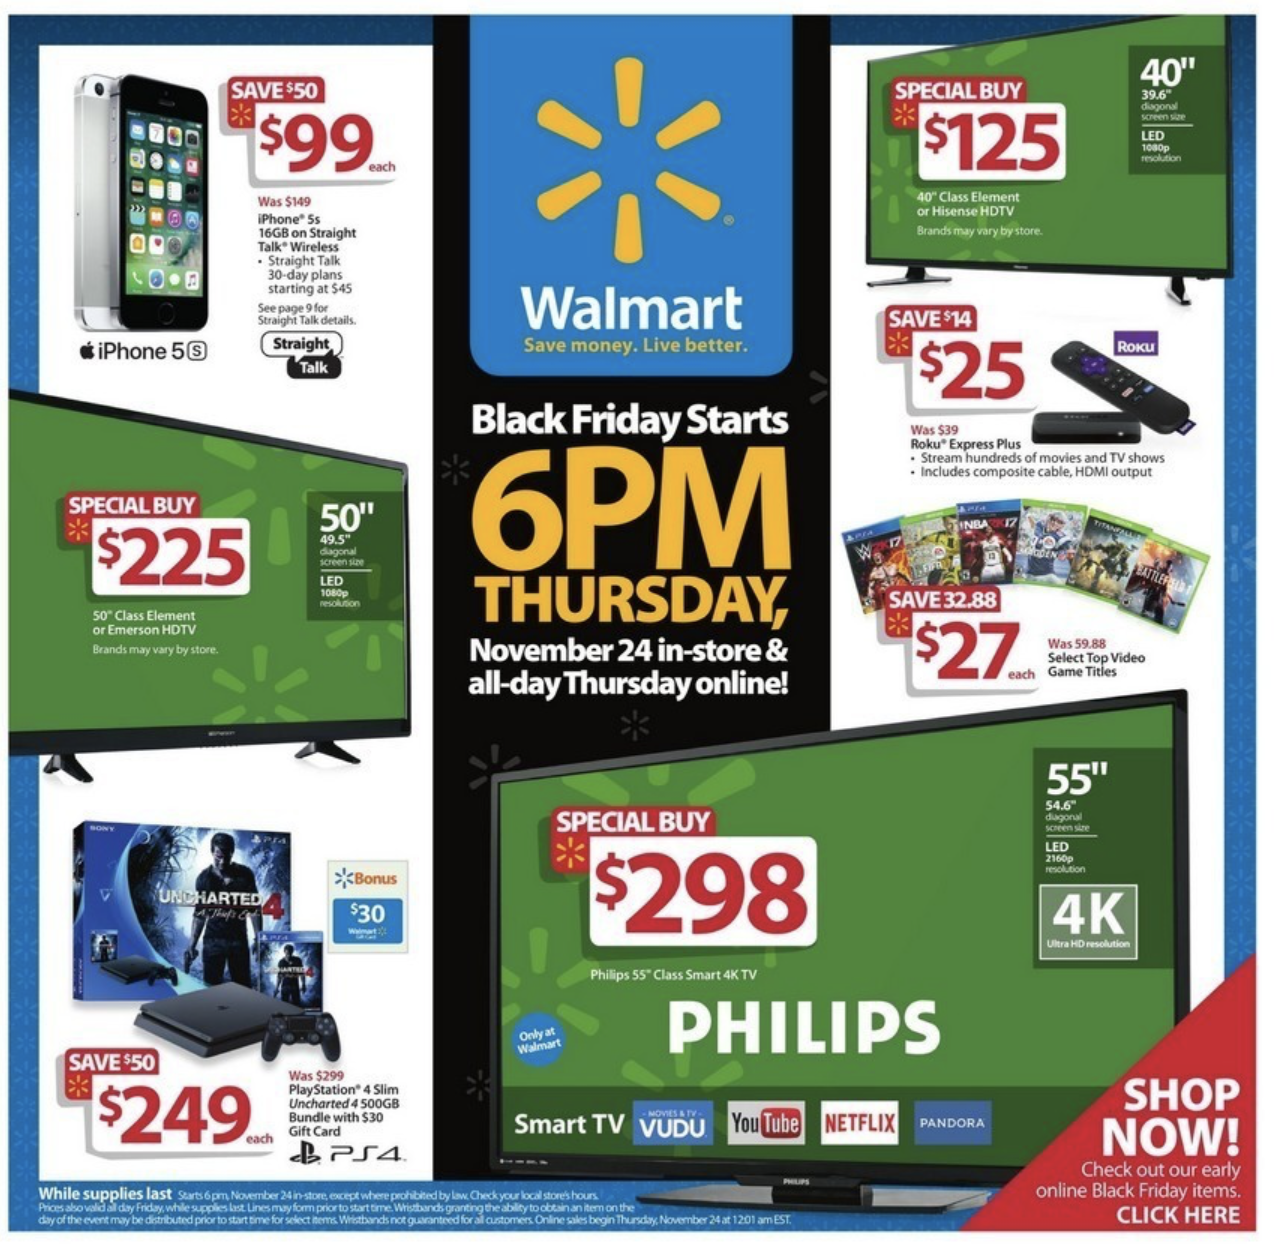 Walmart Iphone Black Friday Deals